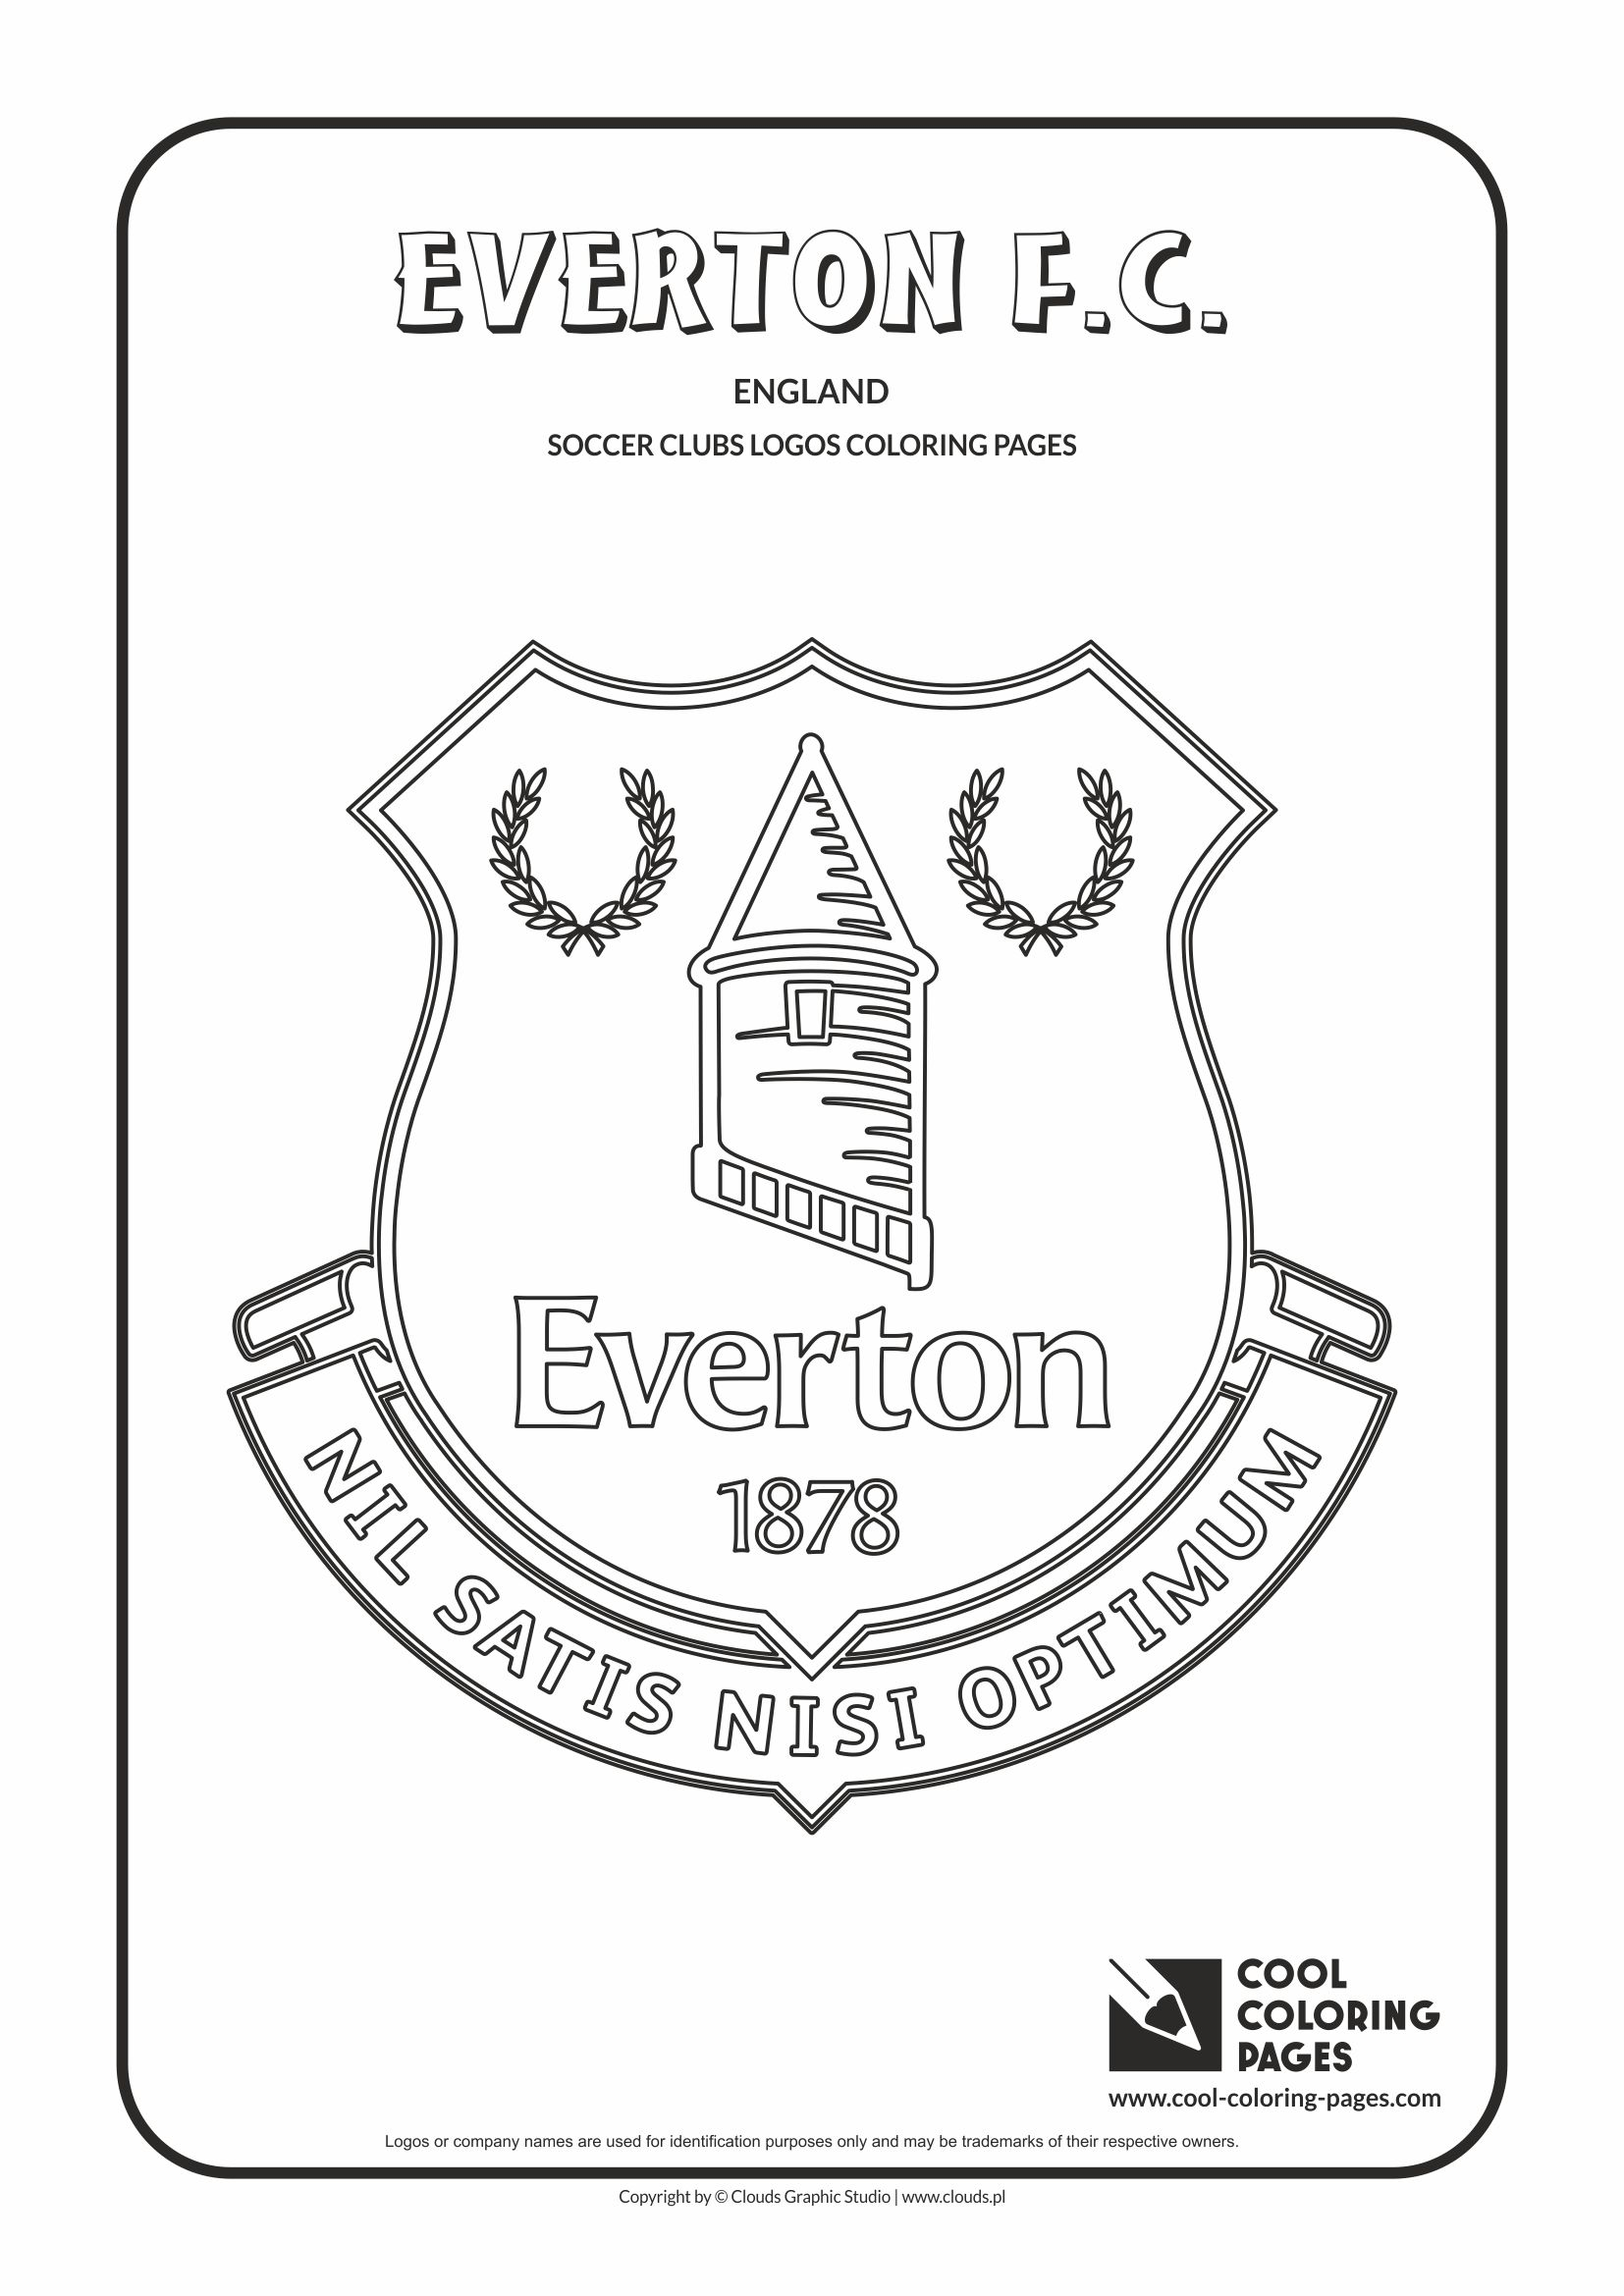 Everton F.C. logo coloring / Coloring page with Everton F.C. logo / Everton F.C. logo colouring page.